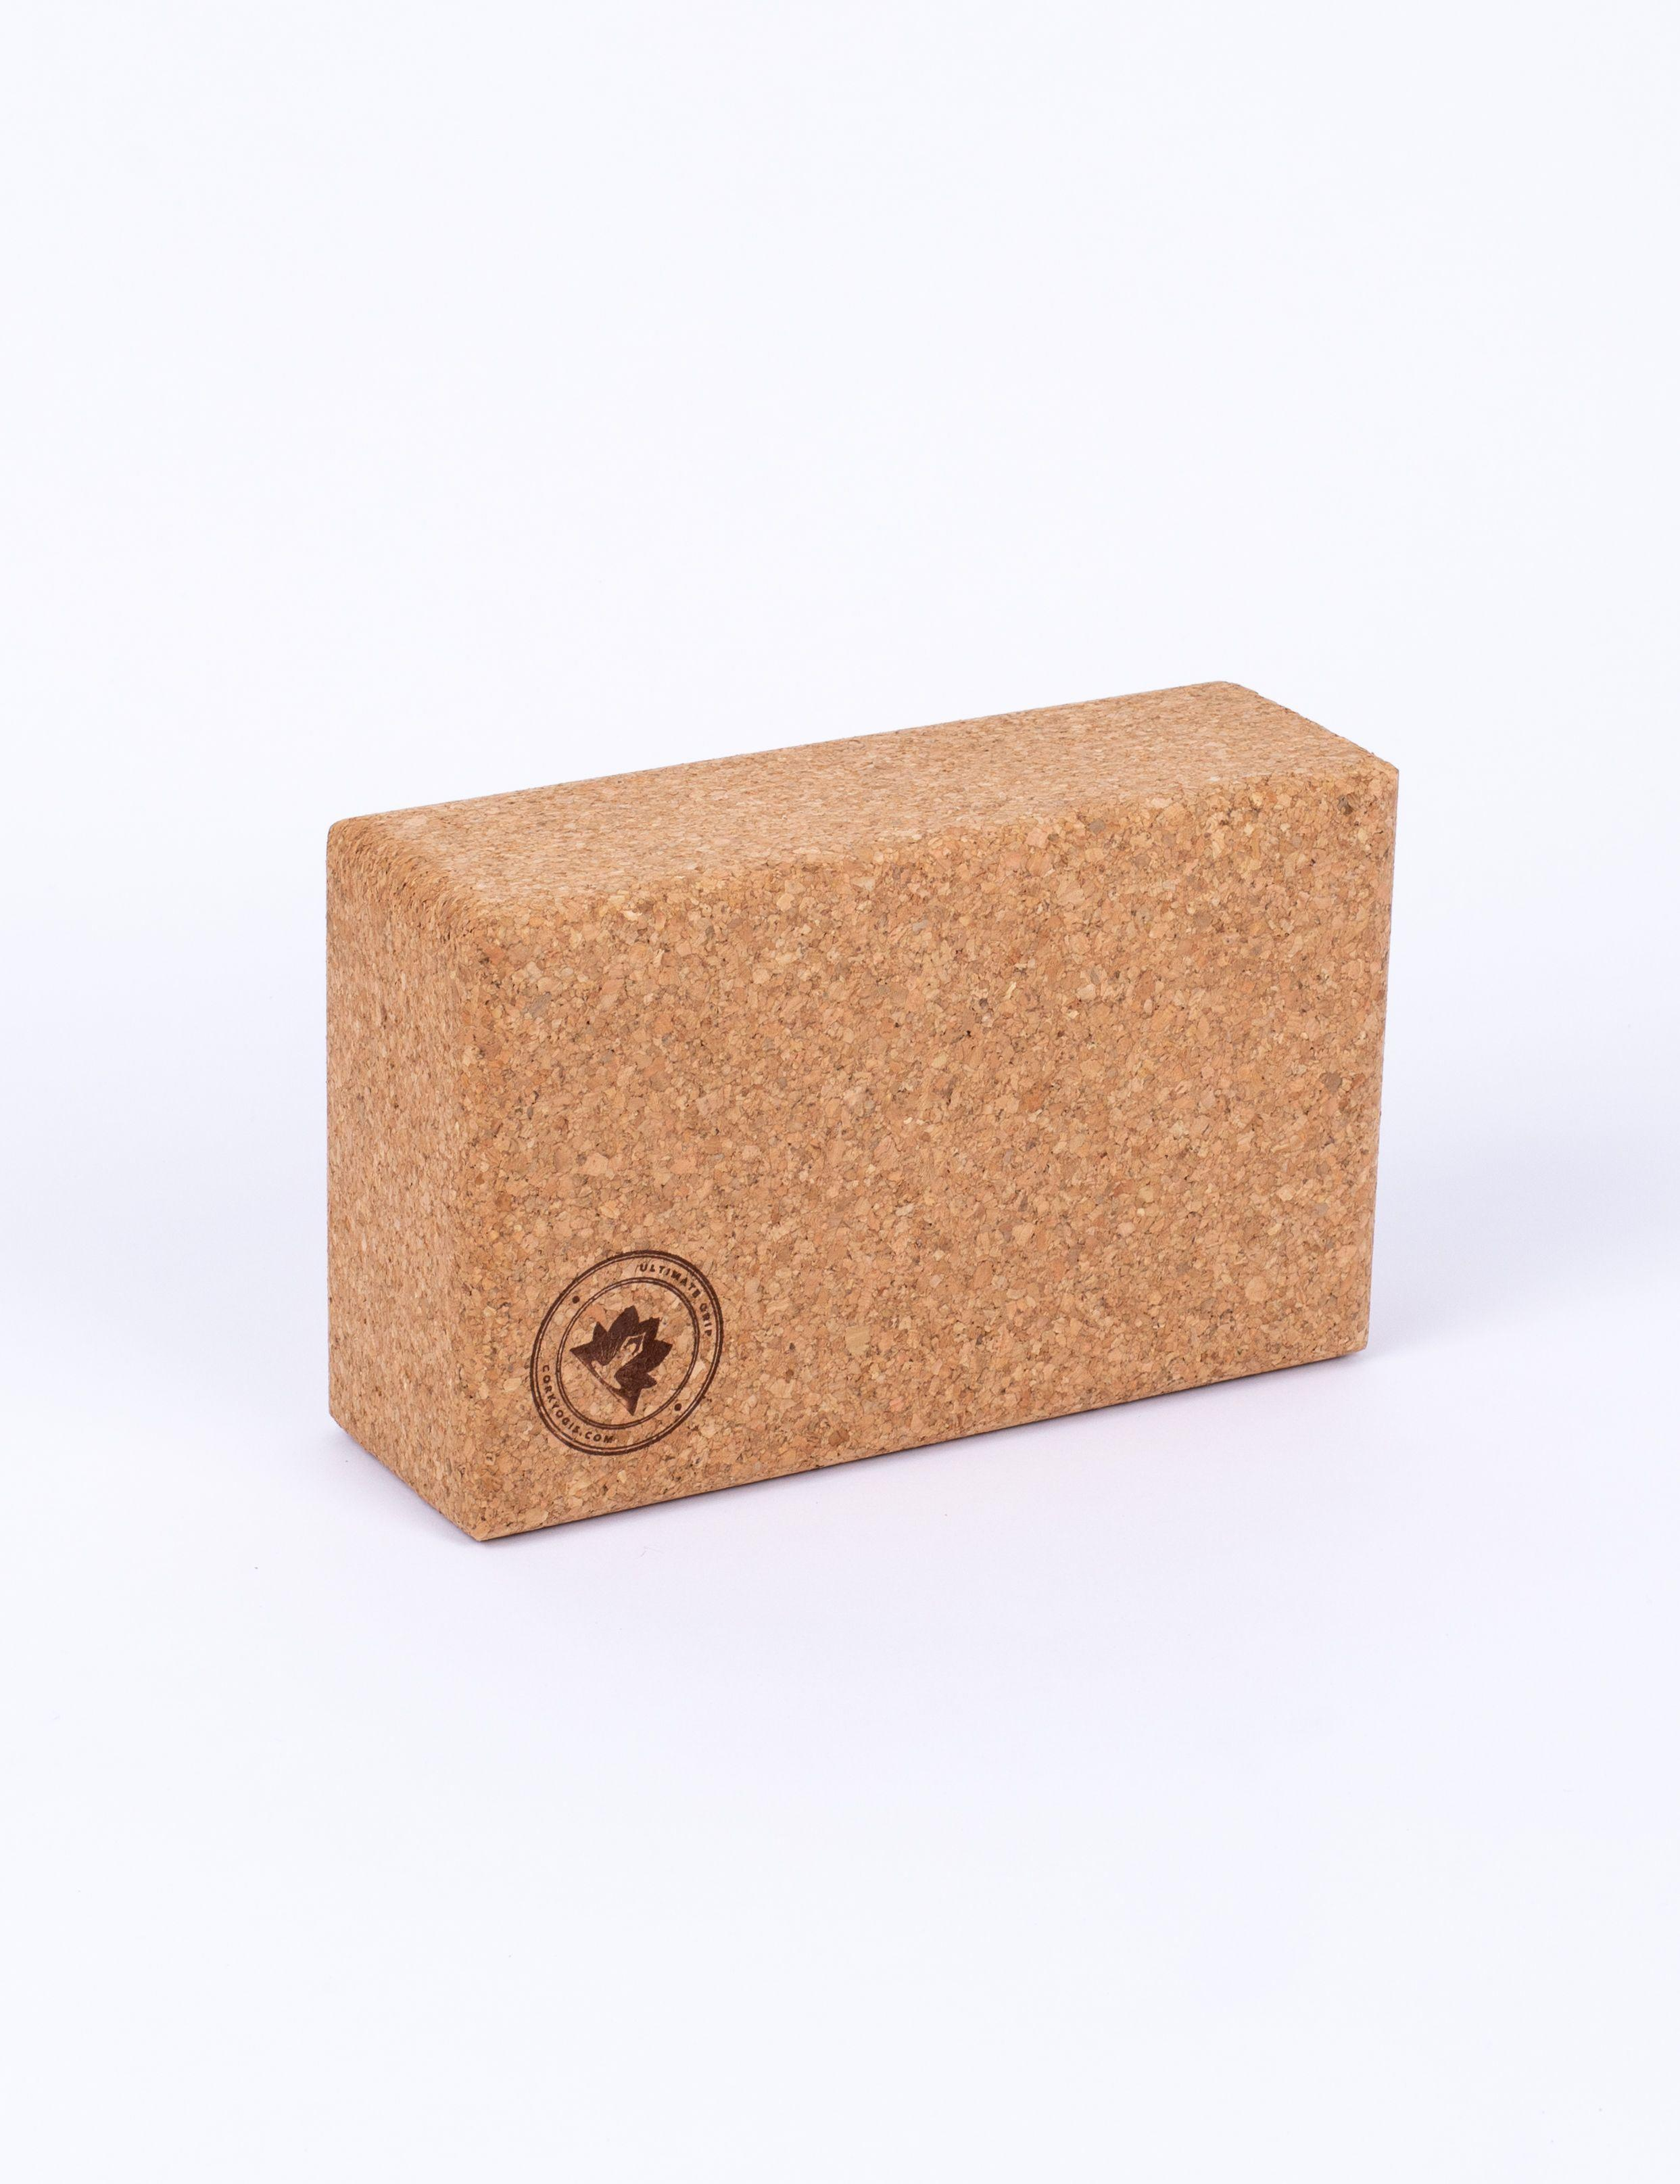 Eco friendly yoga blocks